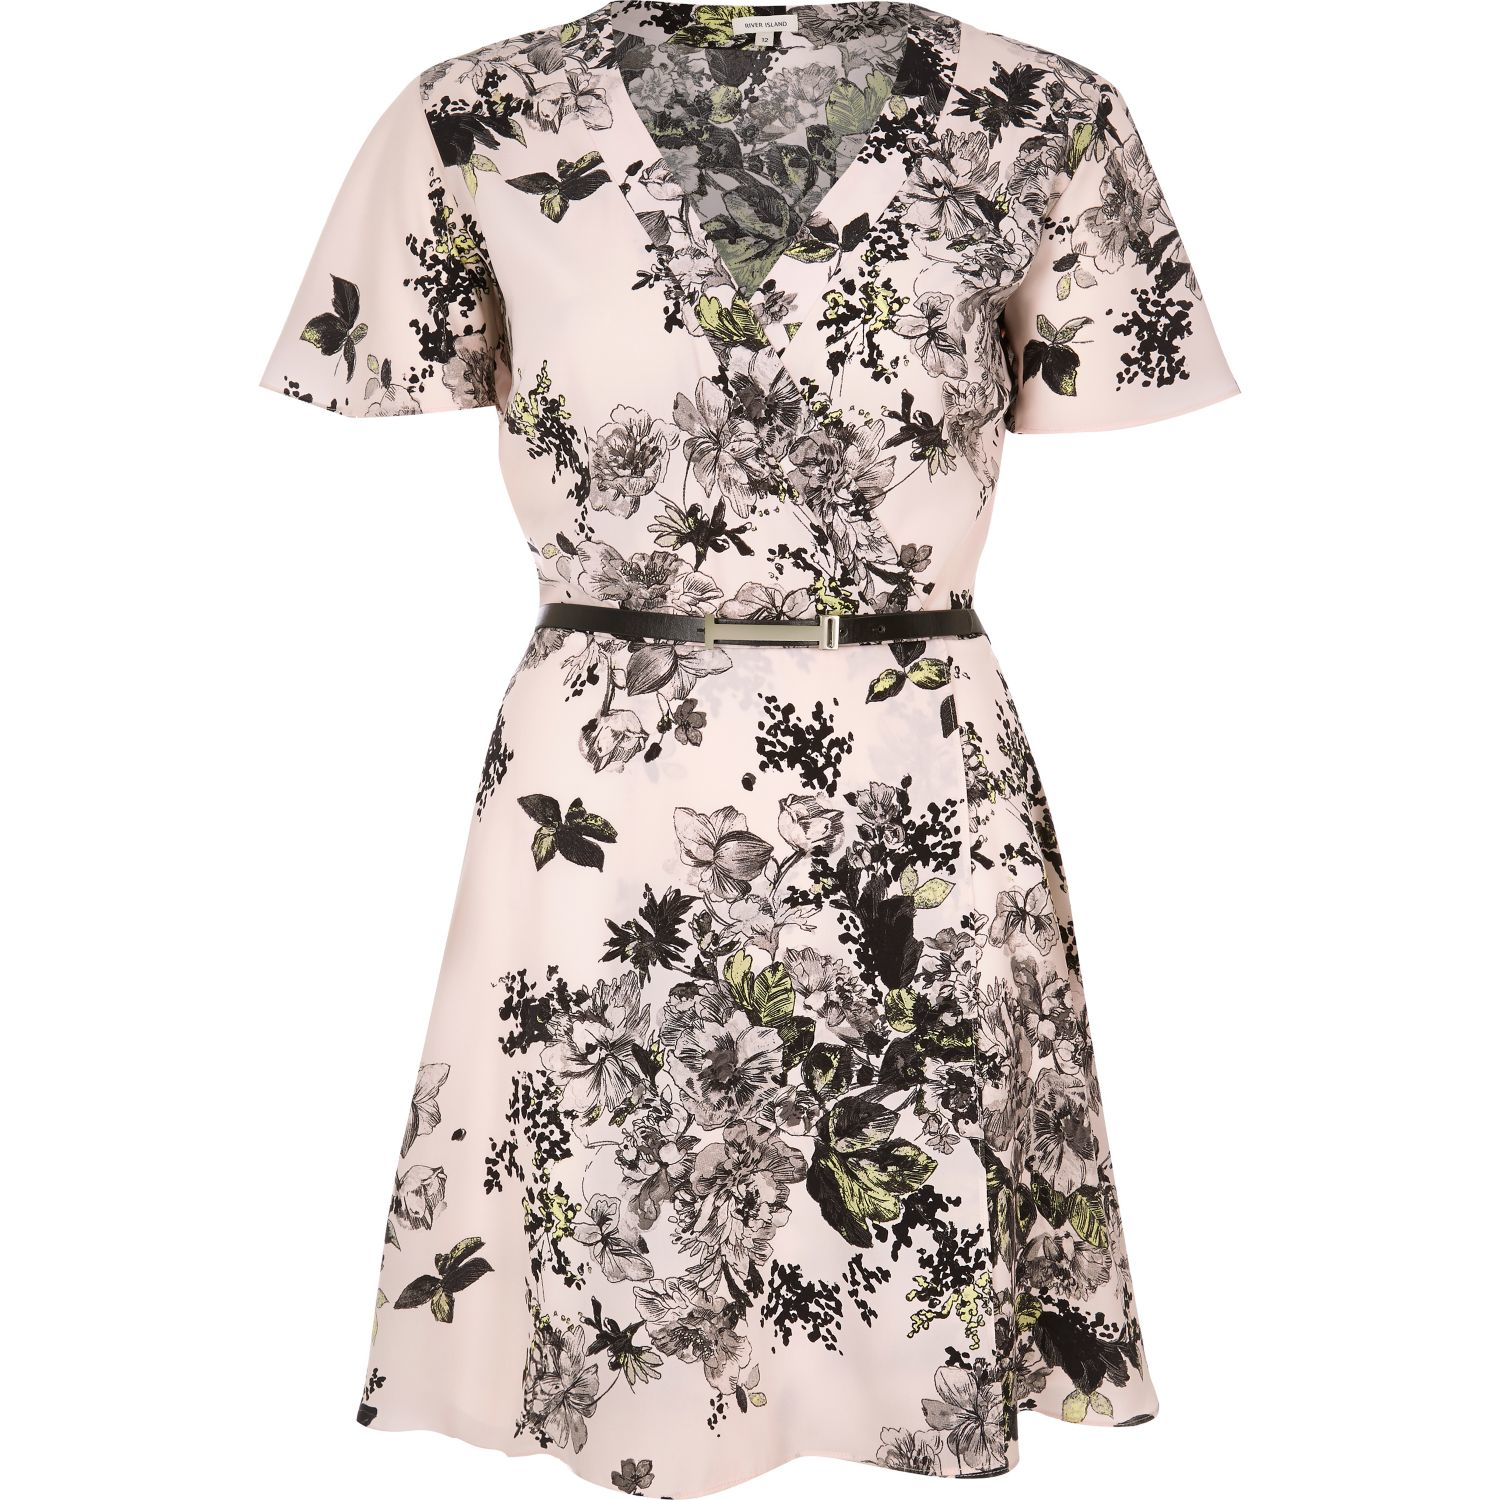 2374f12cea659 Lyst - River Island Pink Floral Print Belted Wrap Dress in Pink